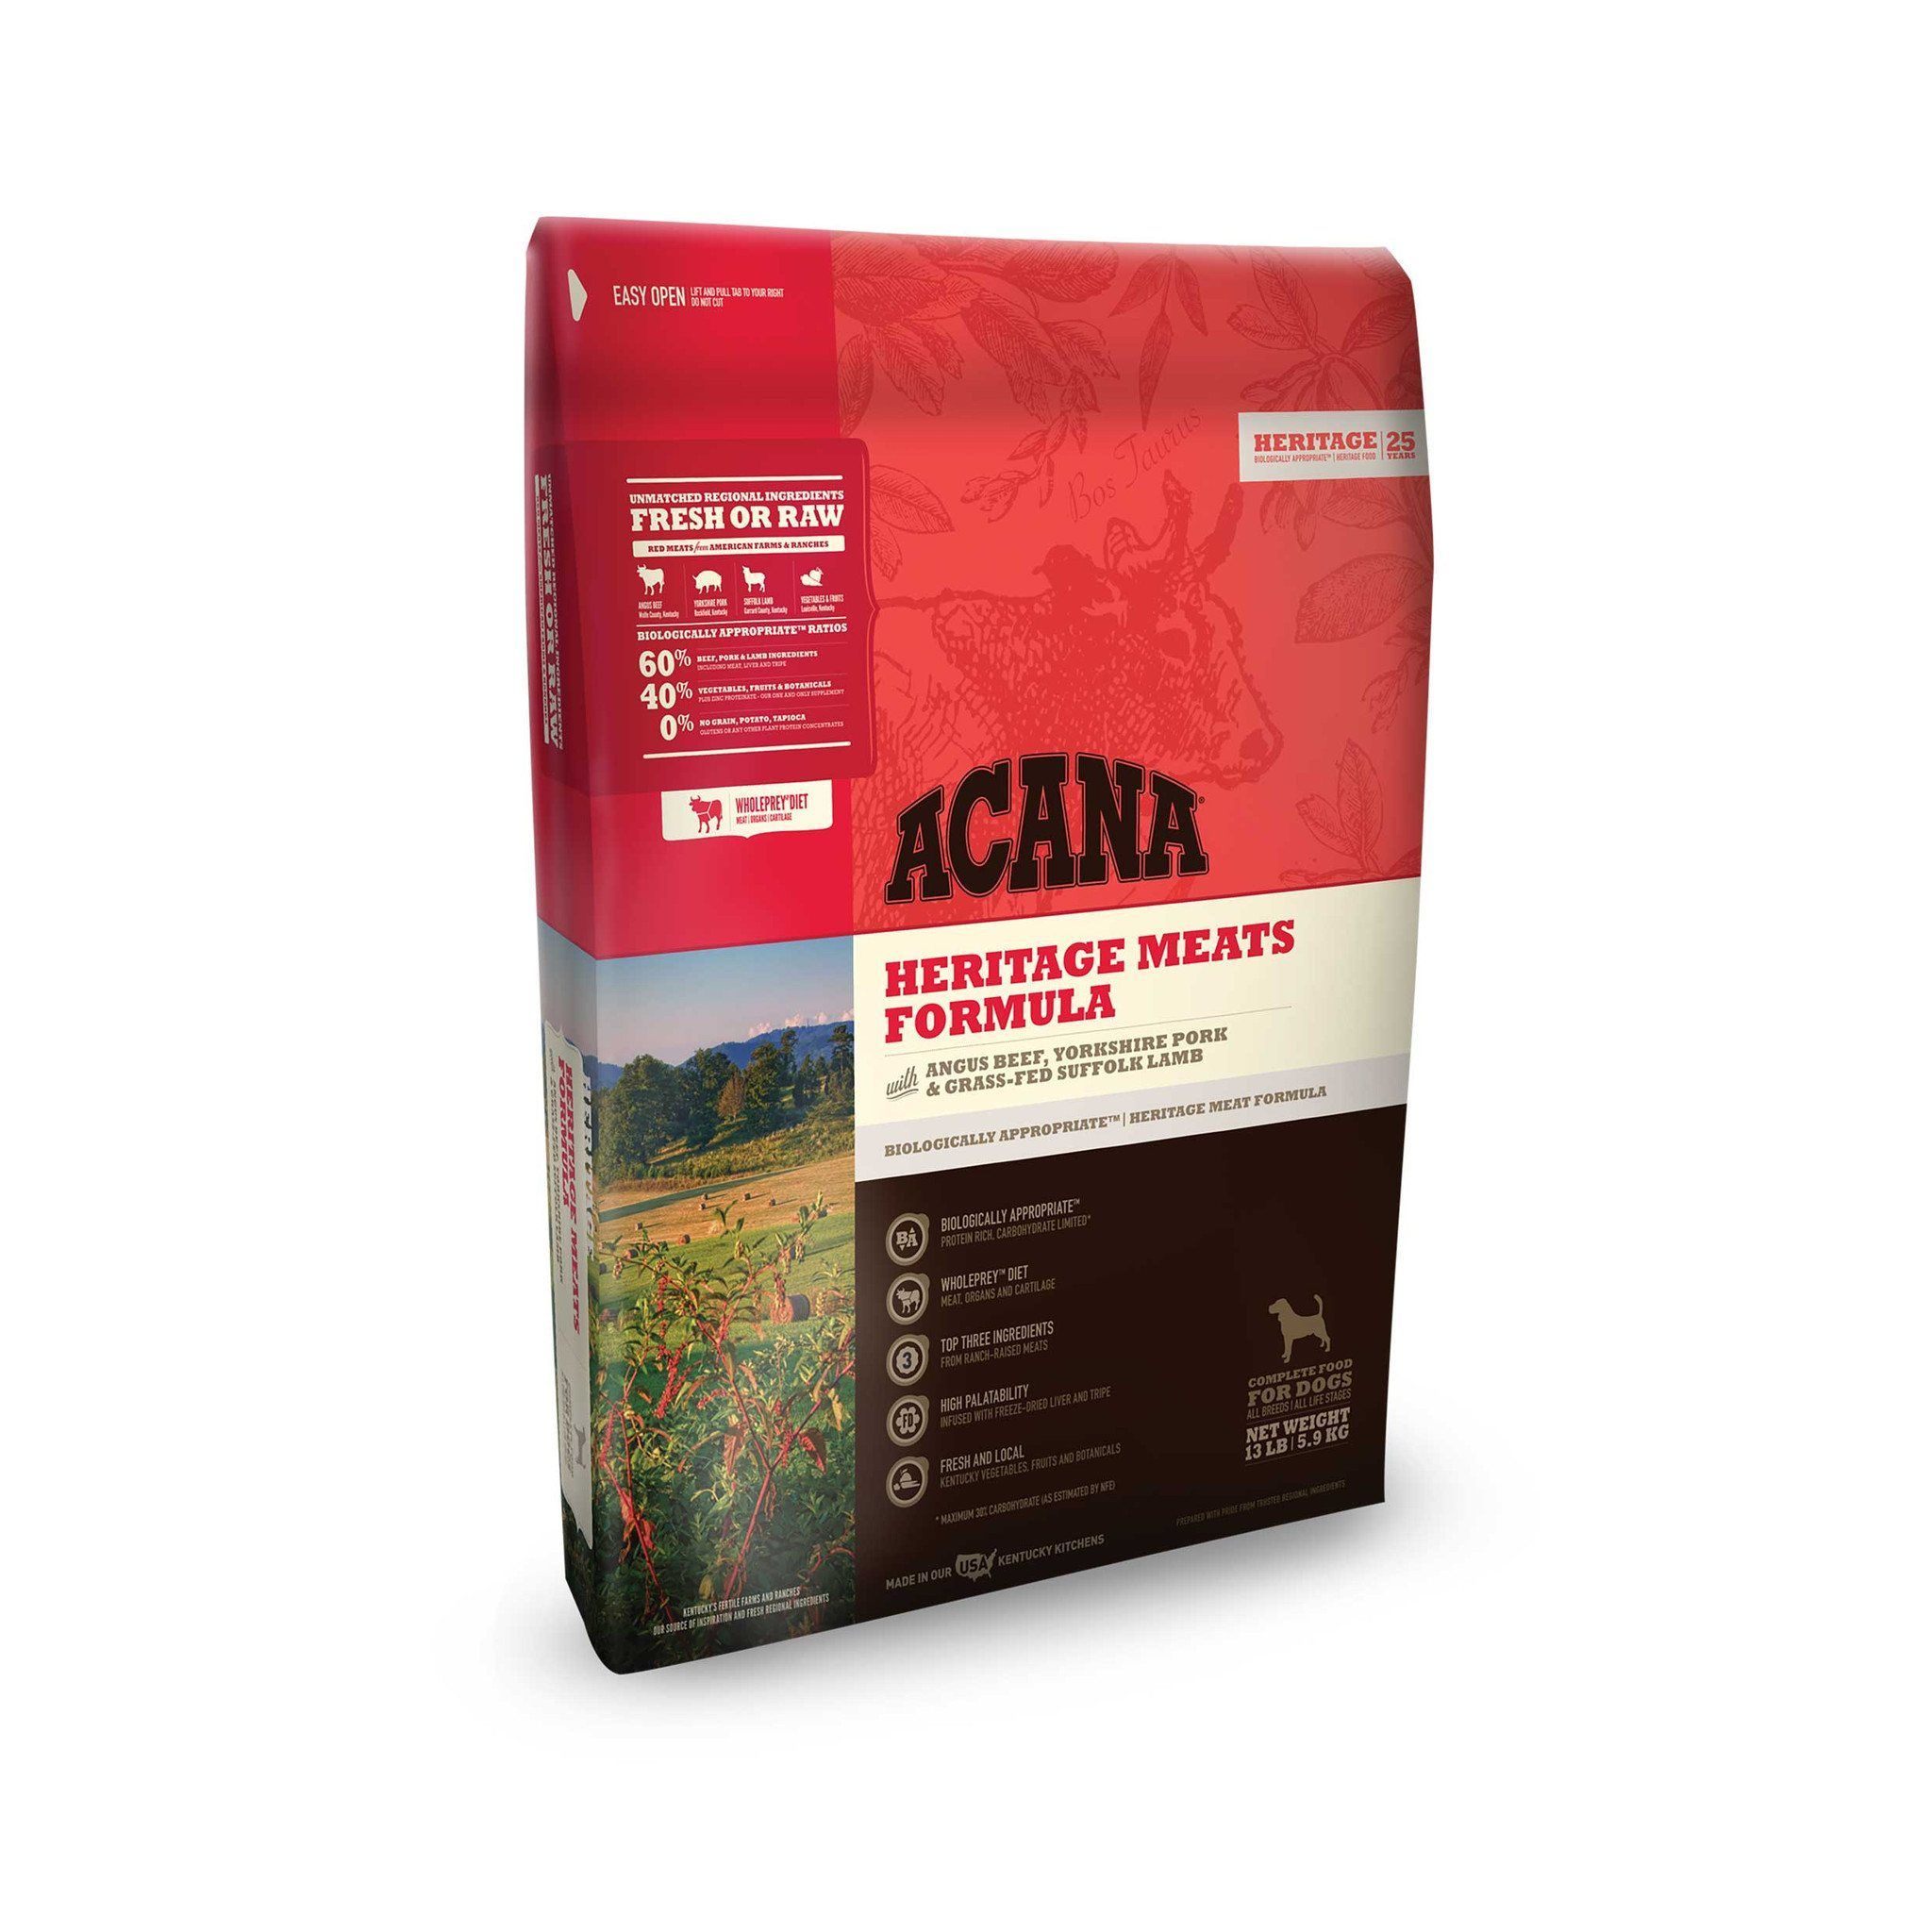 ACANA Dog Food Heritage Red Meat Dry dog food, Acana